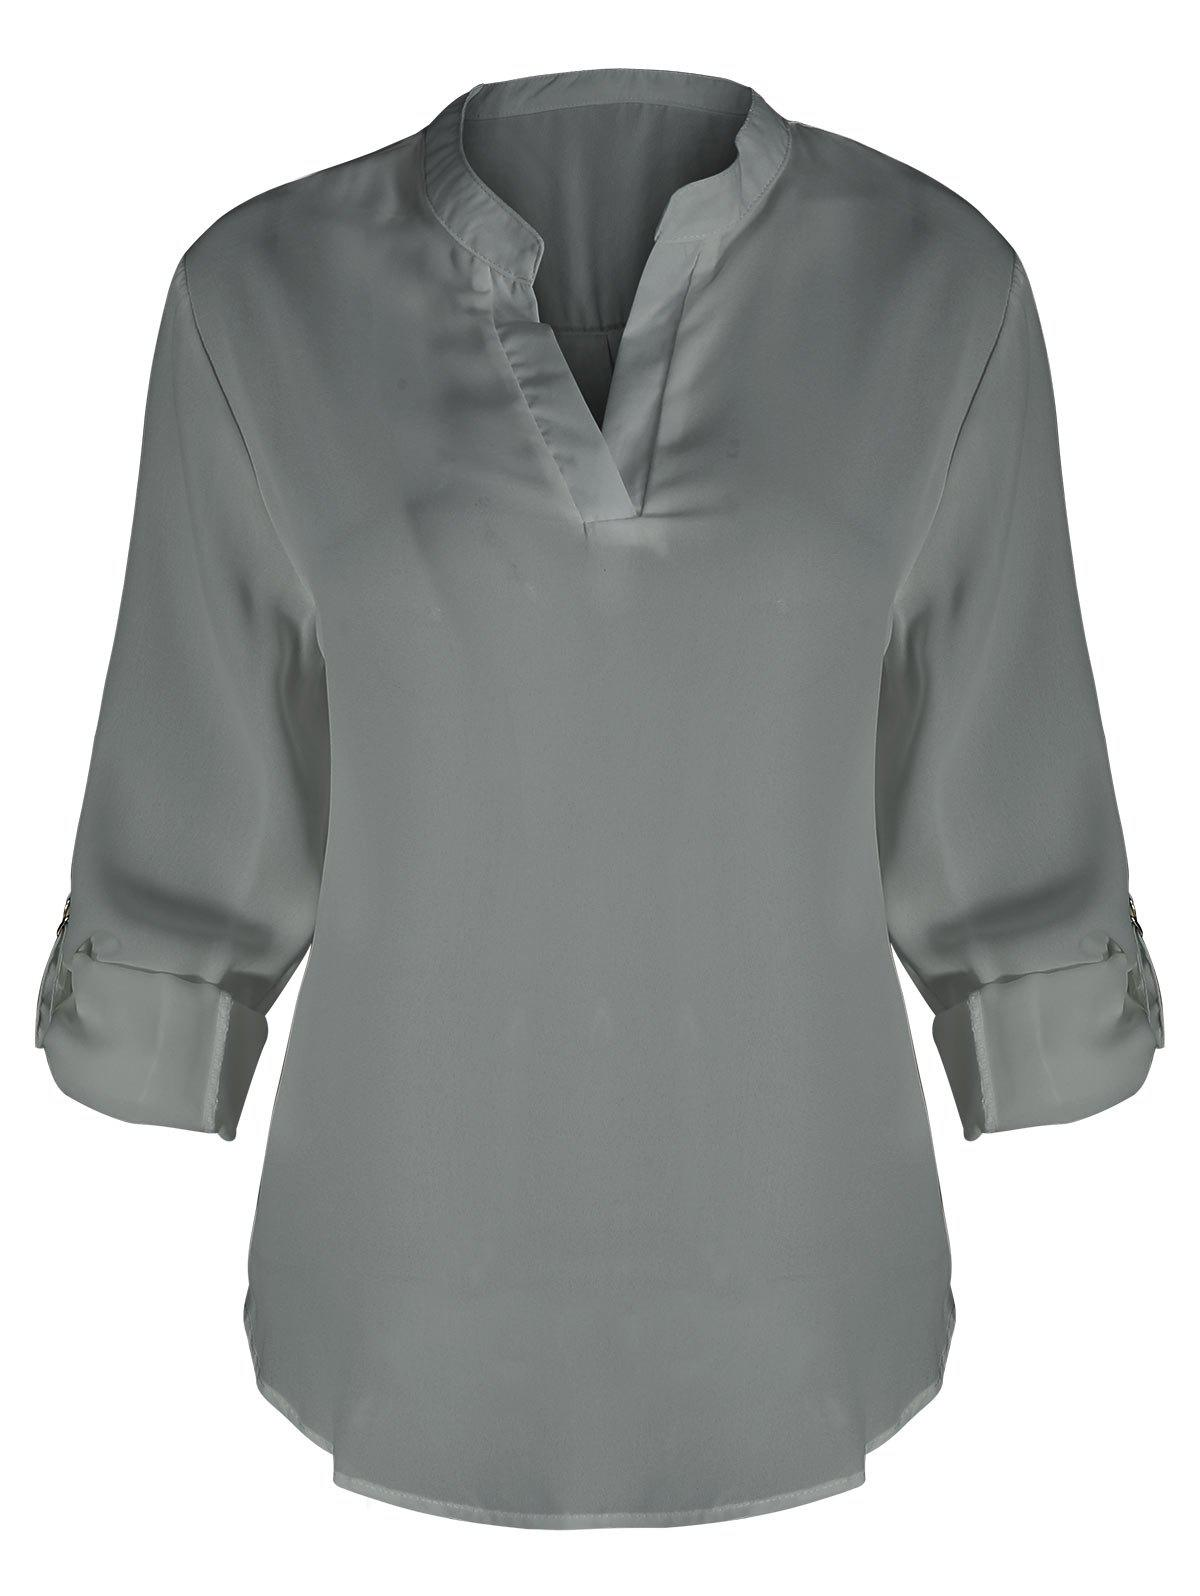 Plus Size V Neck BlouseWOMEN<br><br>Size: 2XL; Color: GRAY; Material: Polyester; Shirt Length: Regular; Sleeve Length: Three Quarter; Collar: V-Neck; Style: Fashion; Season: Fall; Pattern Type: Solid; Weight: 0.3000kg; Package Contents: 1 x Blouse;